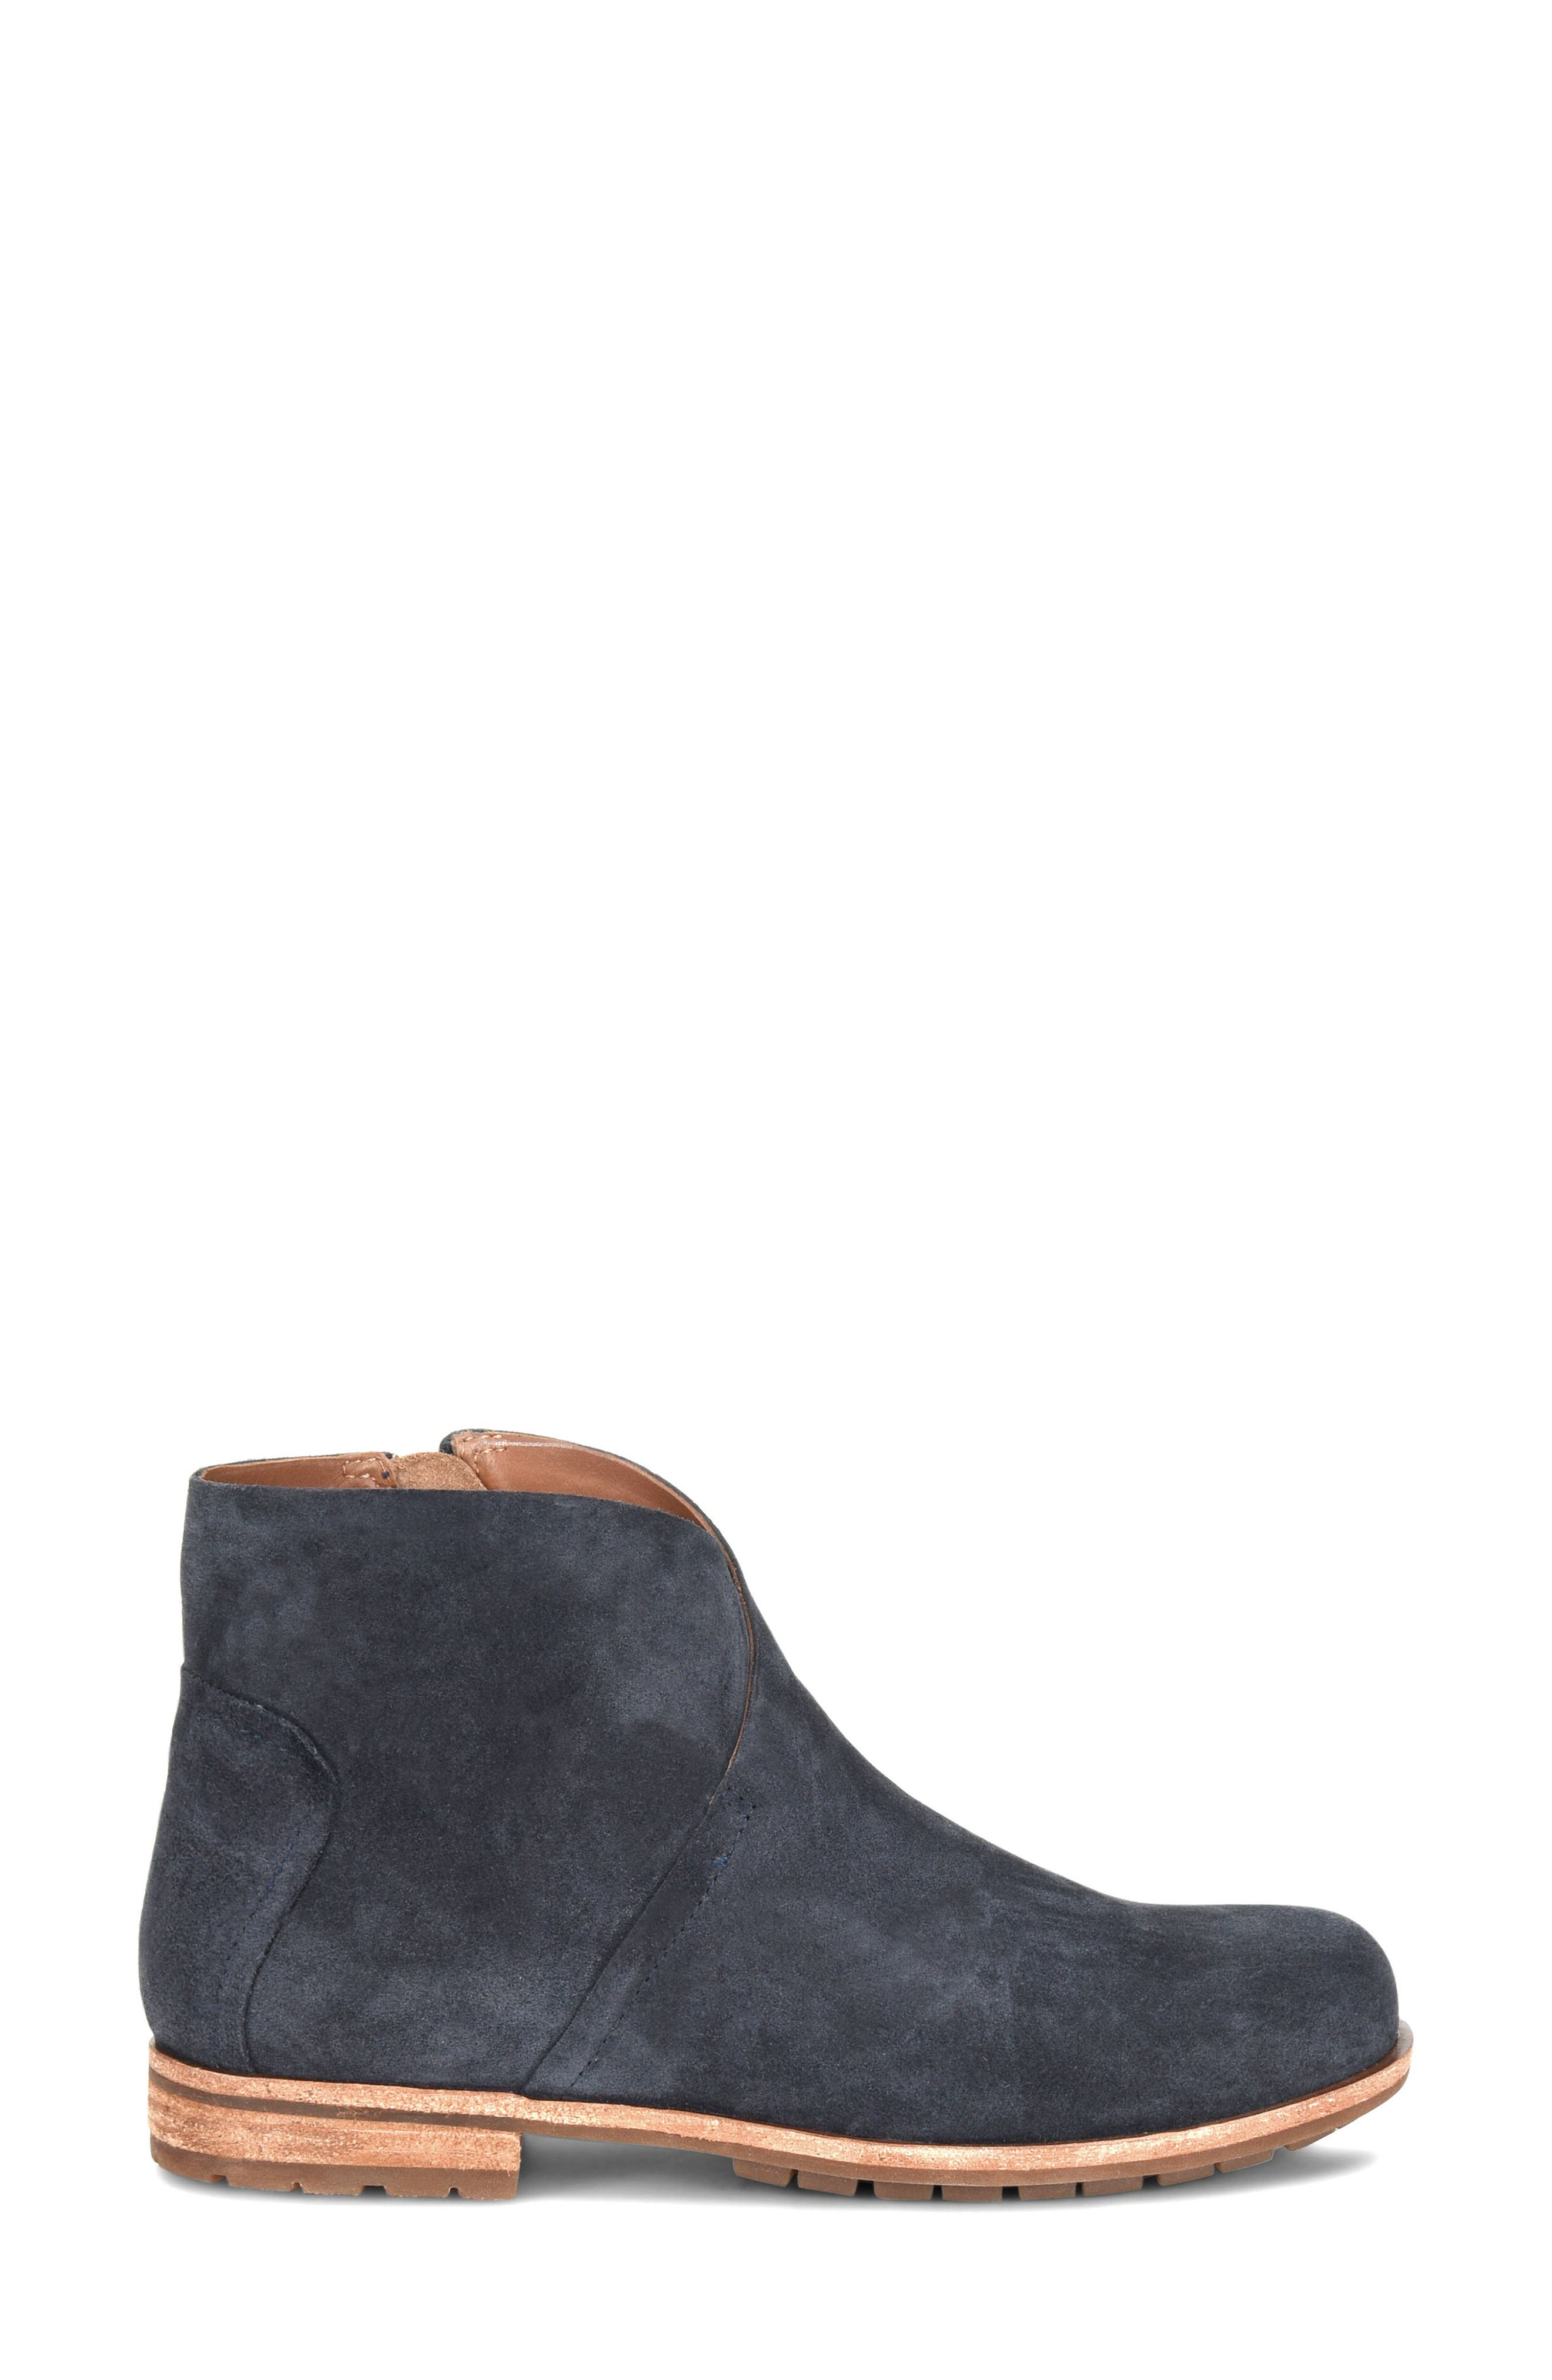 Balsa Boot,                             Alternate thumbnail 3, color,                             Navy Suede